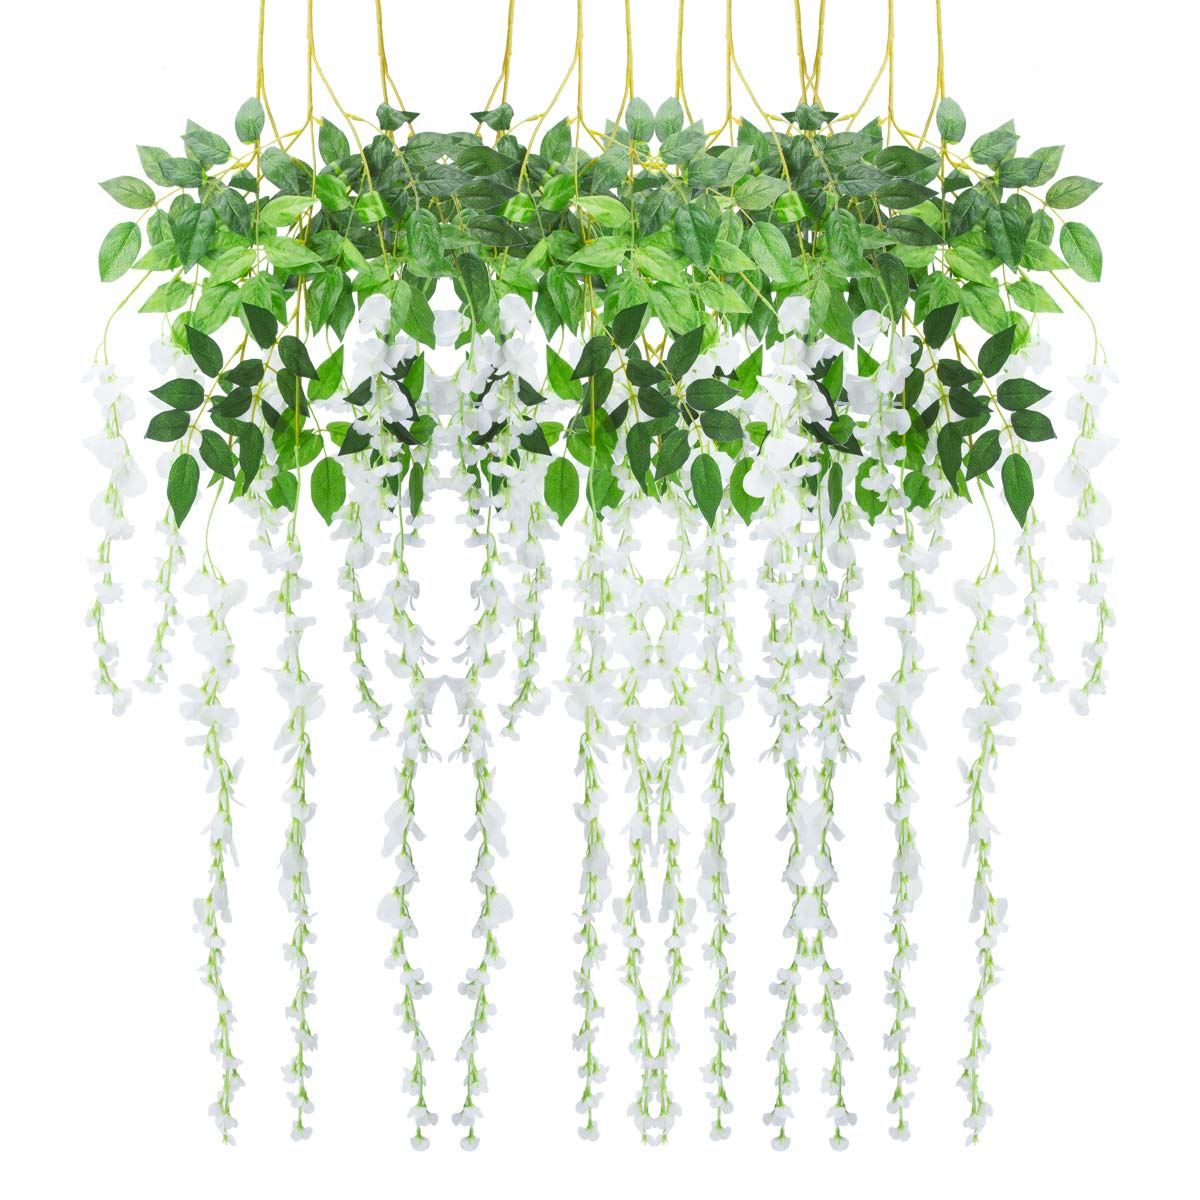 Bomarolan Wisteria Artificial Silk Vine Flowers Fake Hanging Garland for Wedding Arch Backdrop Decor 3 5//8 Feet Pack of 12 Pieces(White)